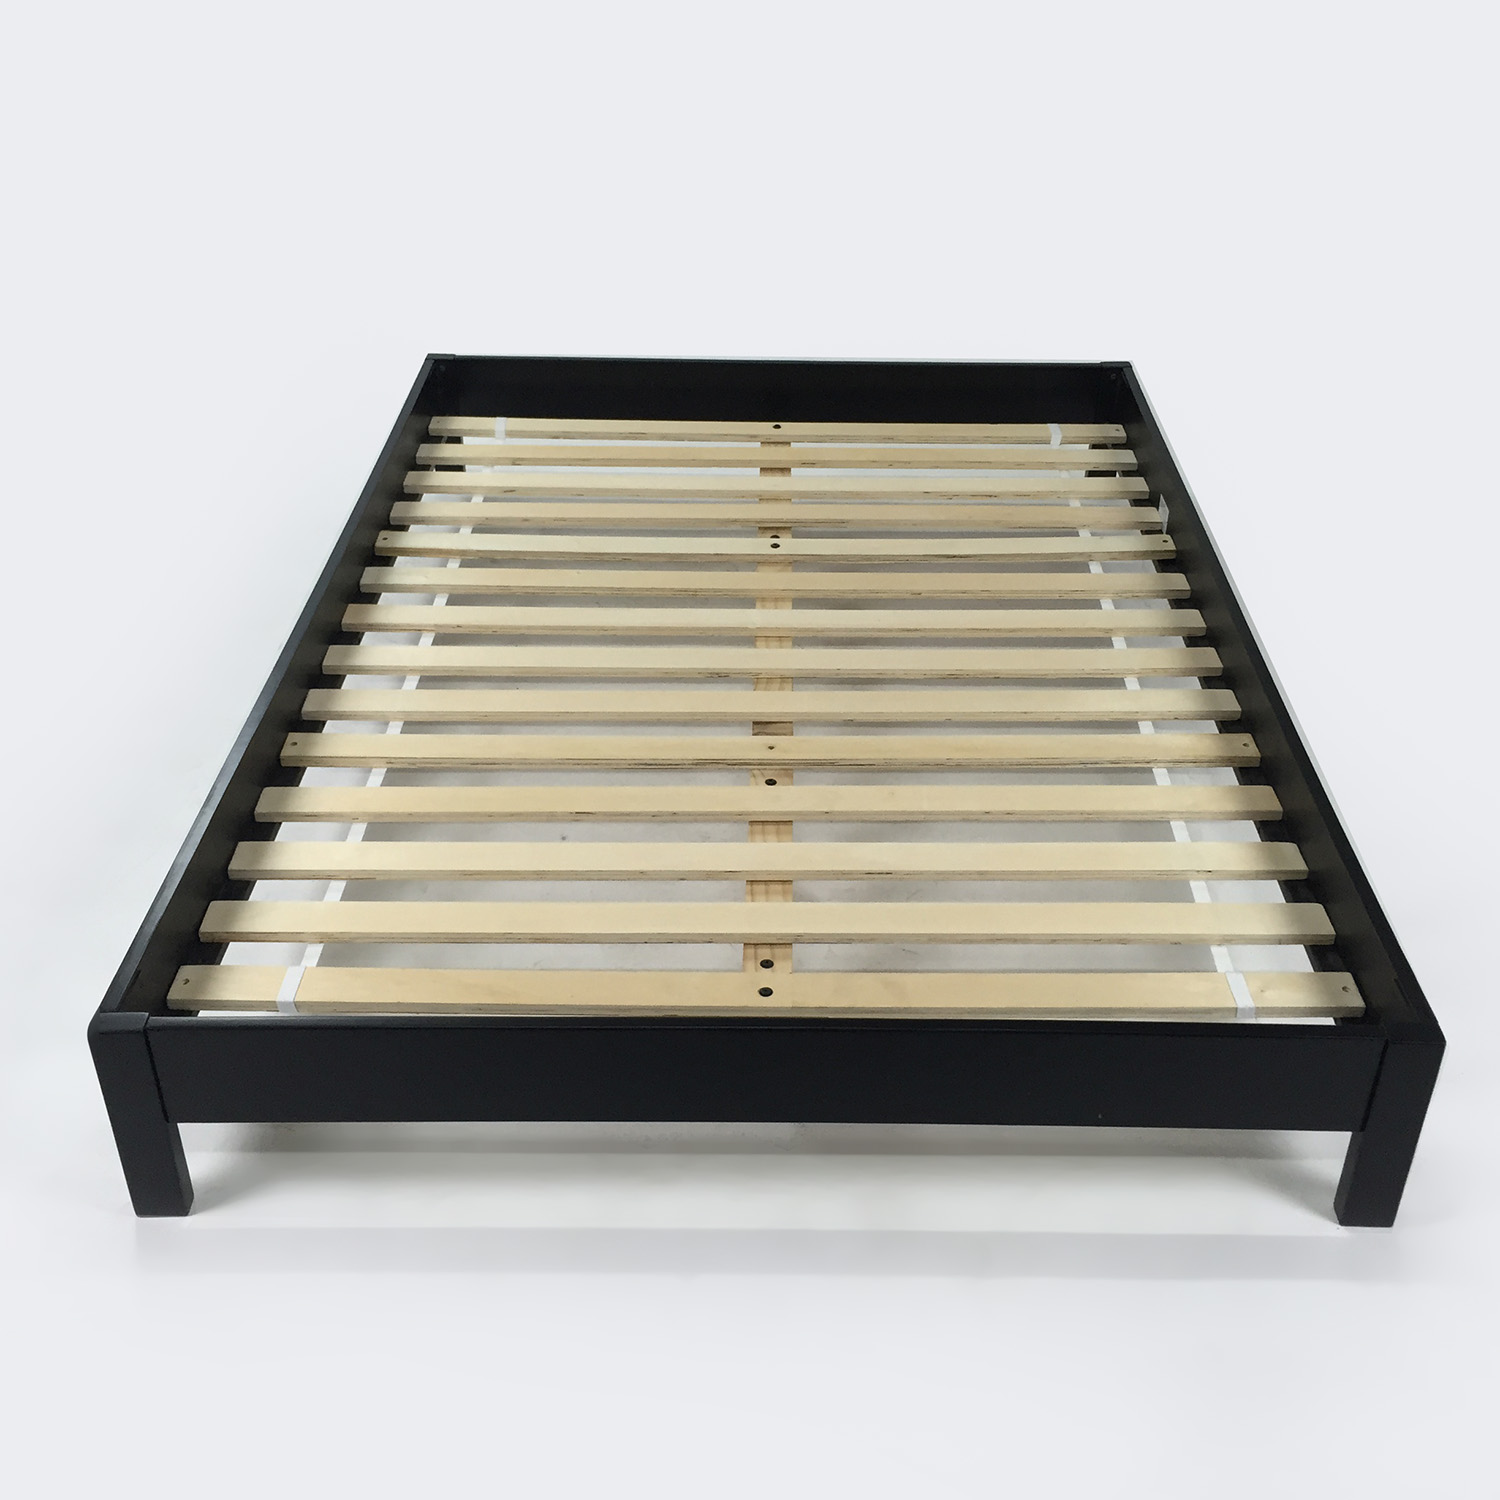 Size black bed frame 28 images size black bed frame for Full size bed frame